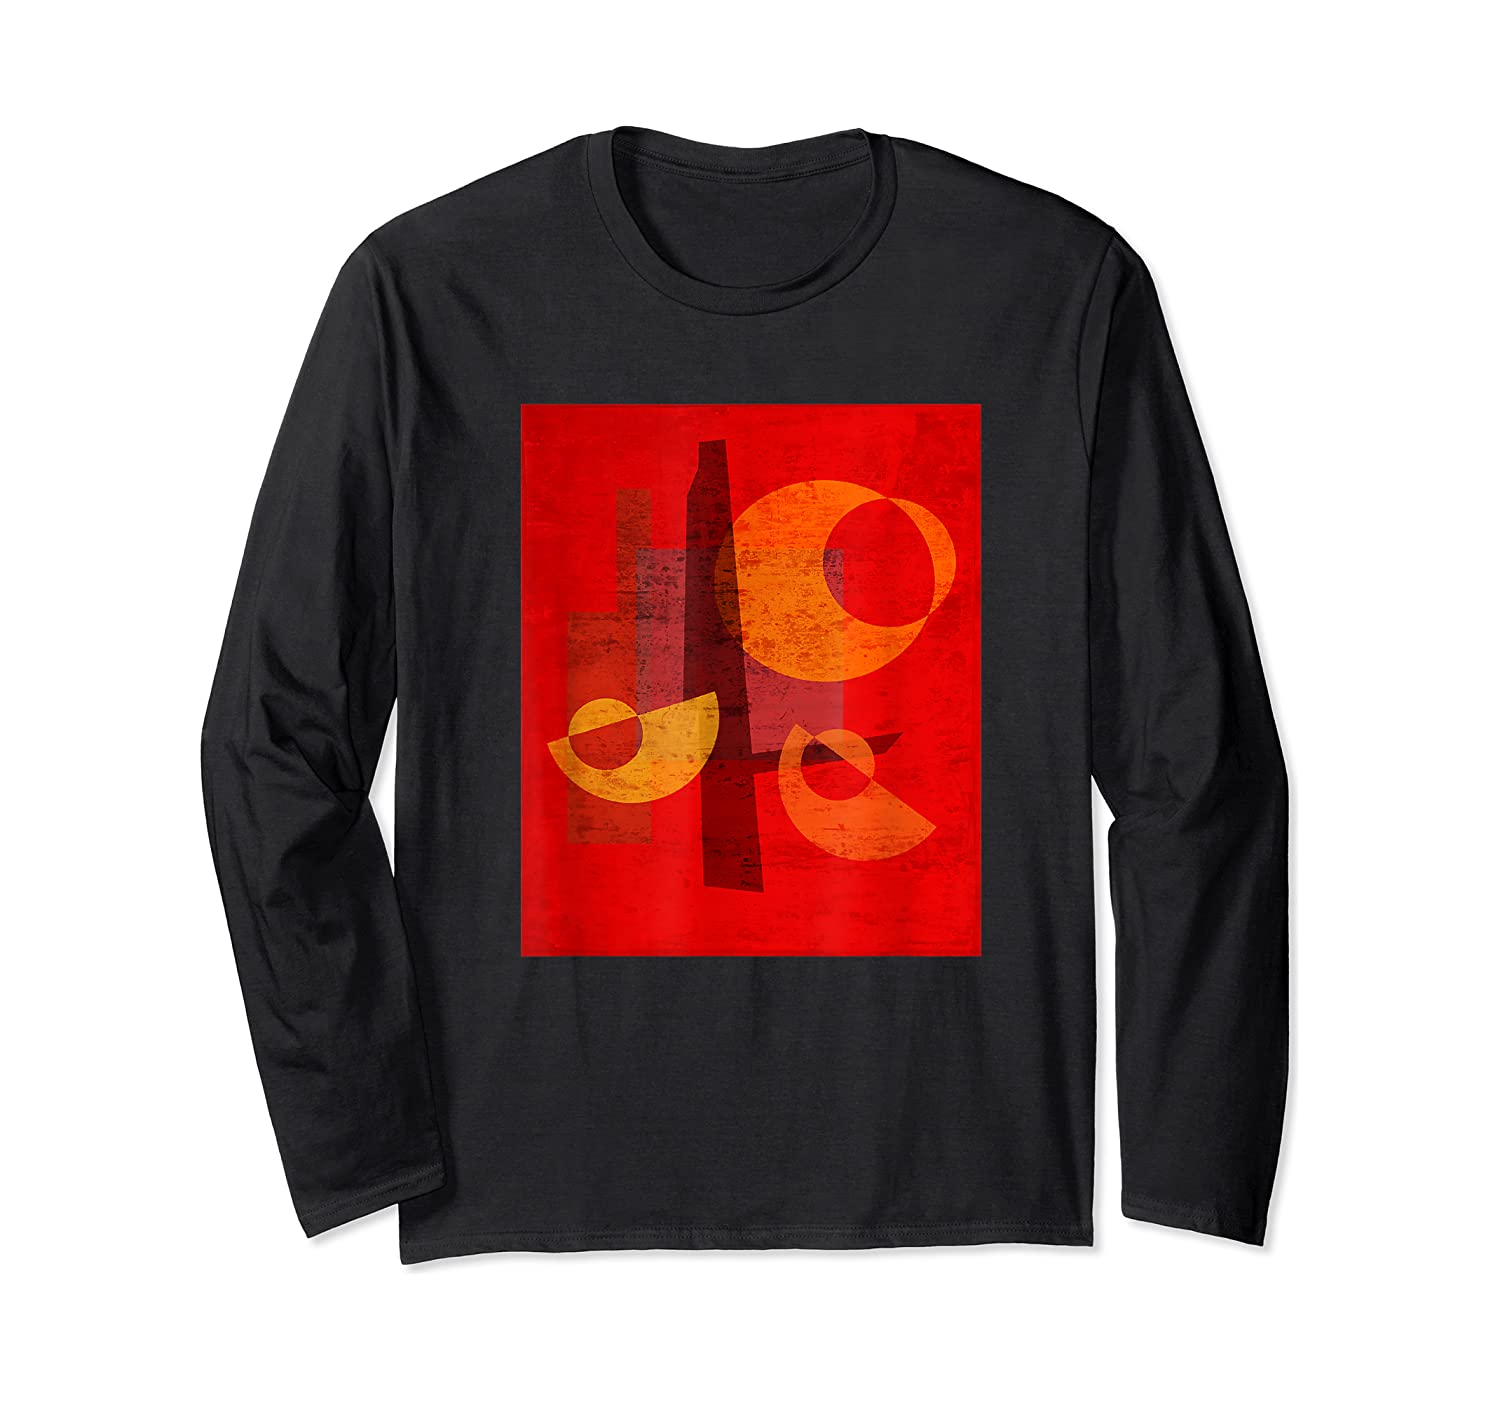 Red And Orange Abstract Shapes Shirts Long Sleeve T-shirt